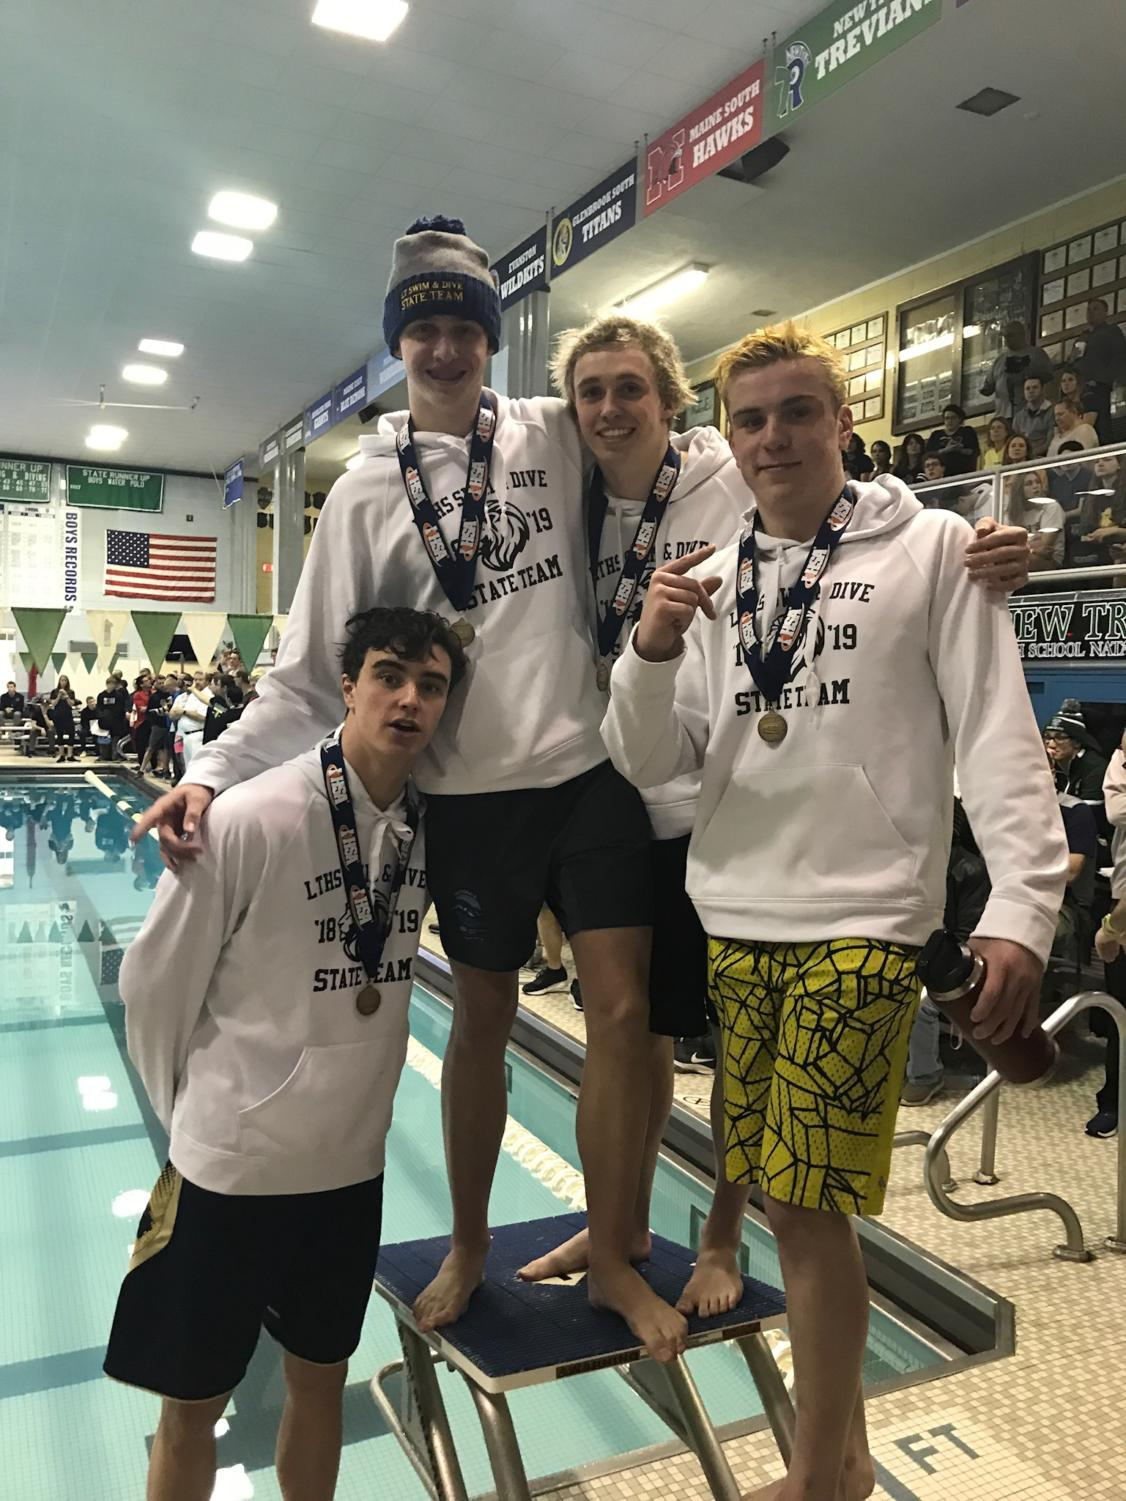 Medley relay team posing with their medals after winning the state title at New Trier on Feb. 23 (Donatelli).